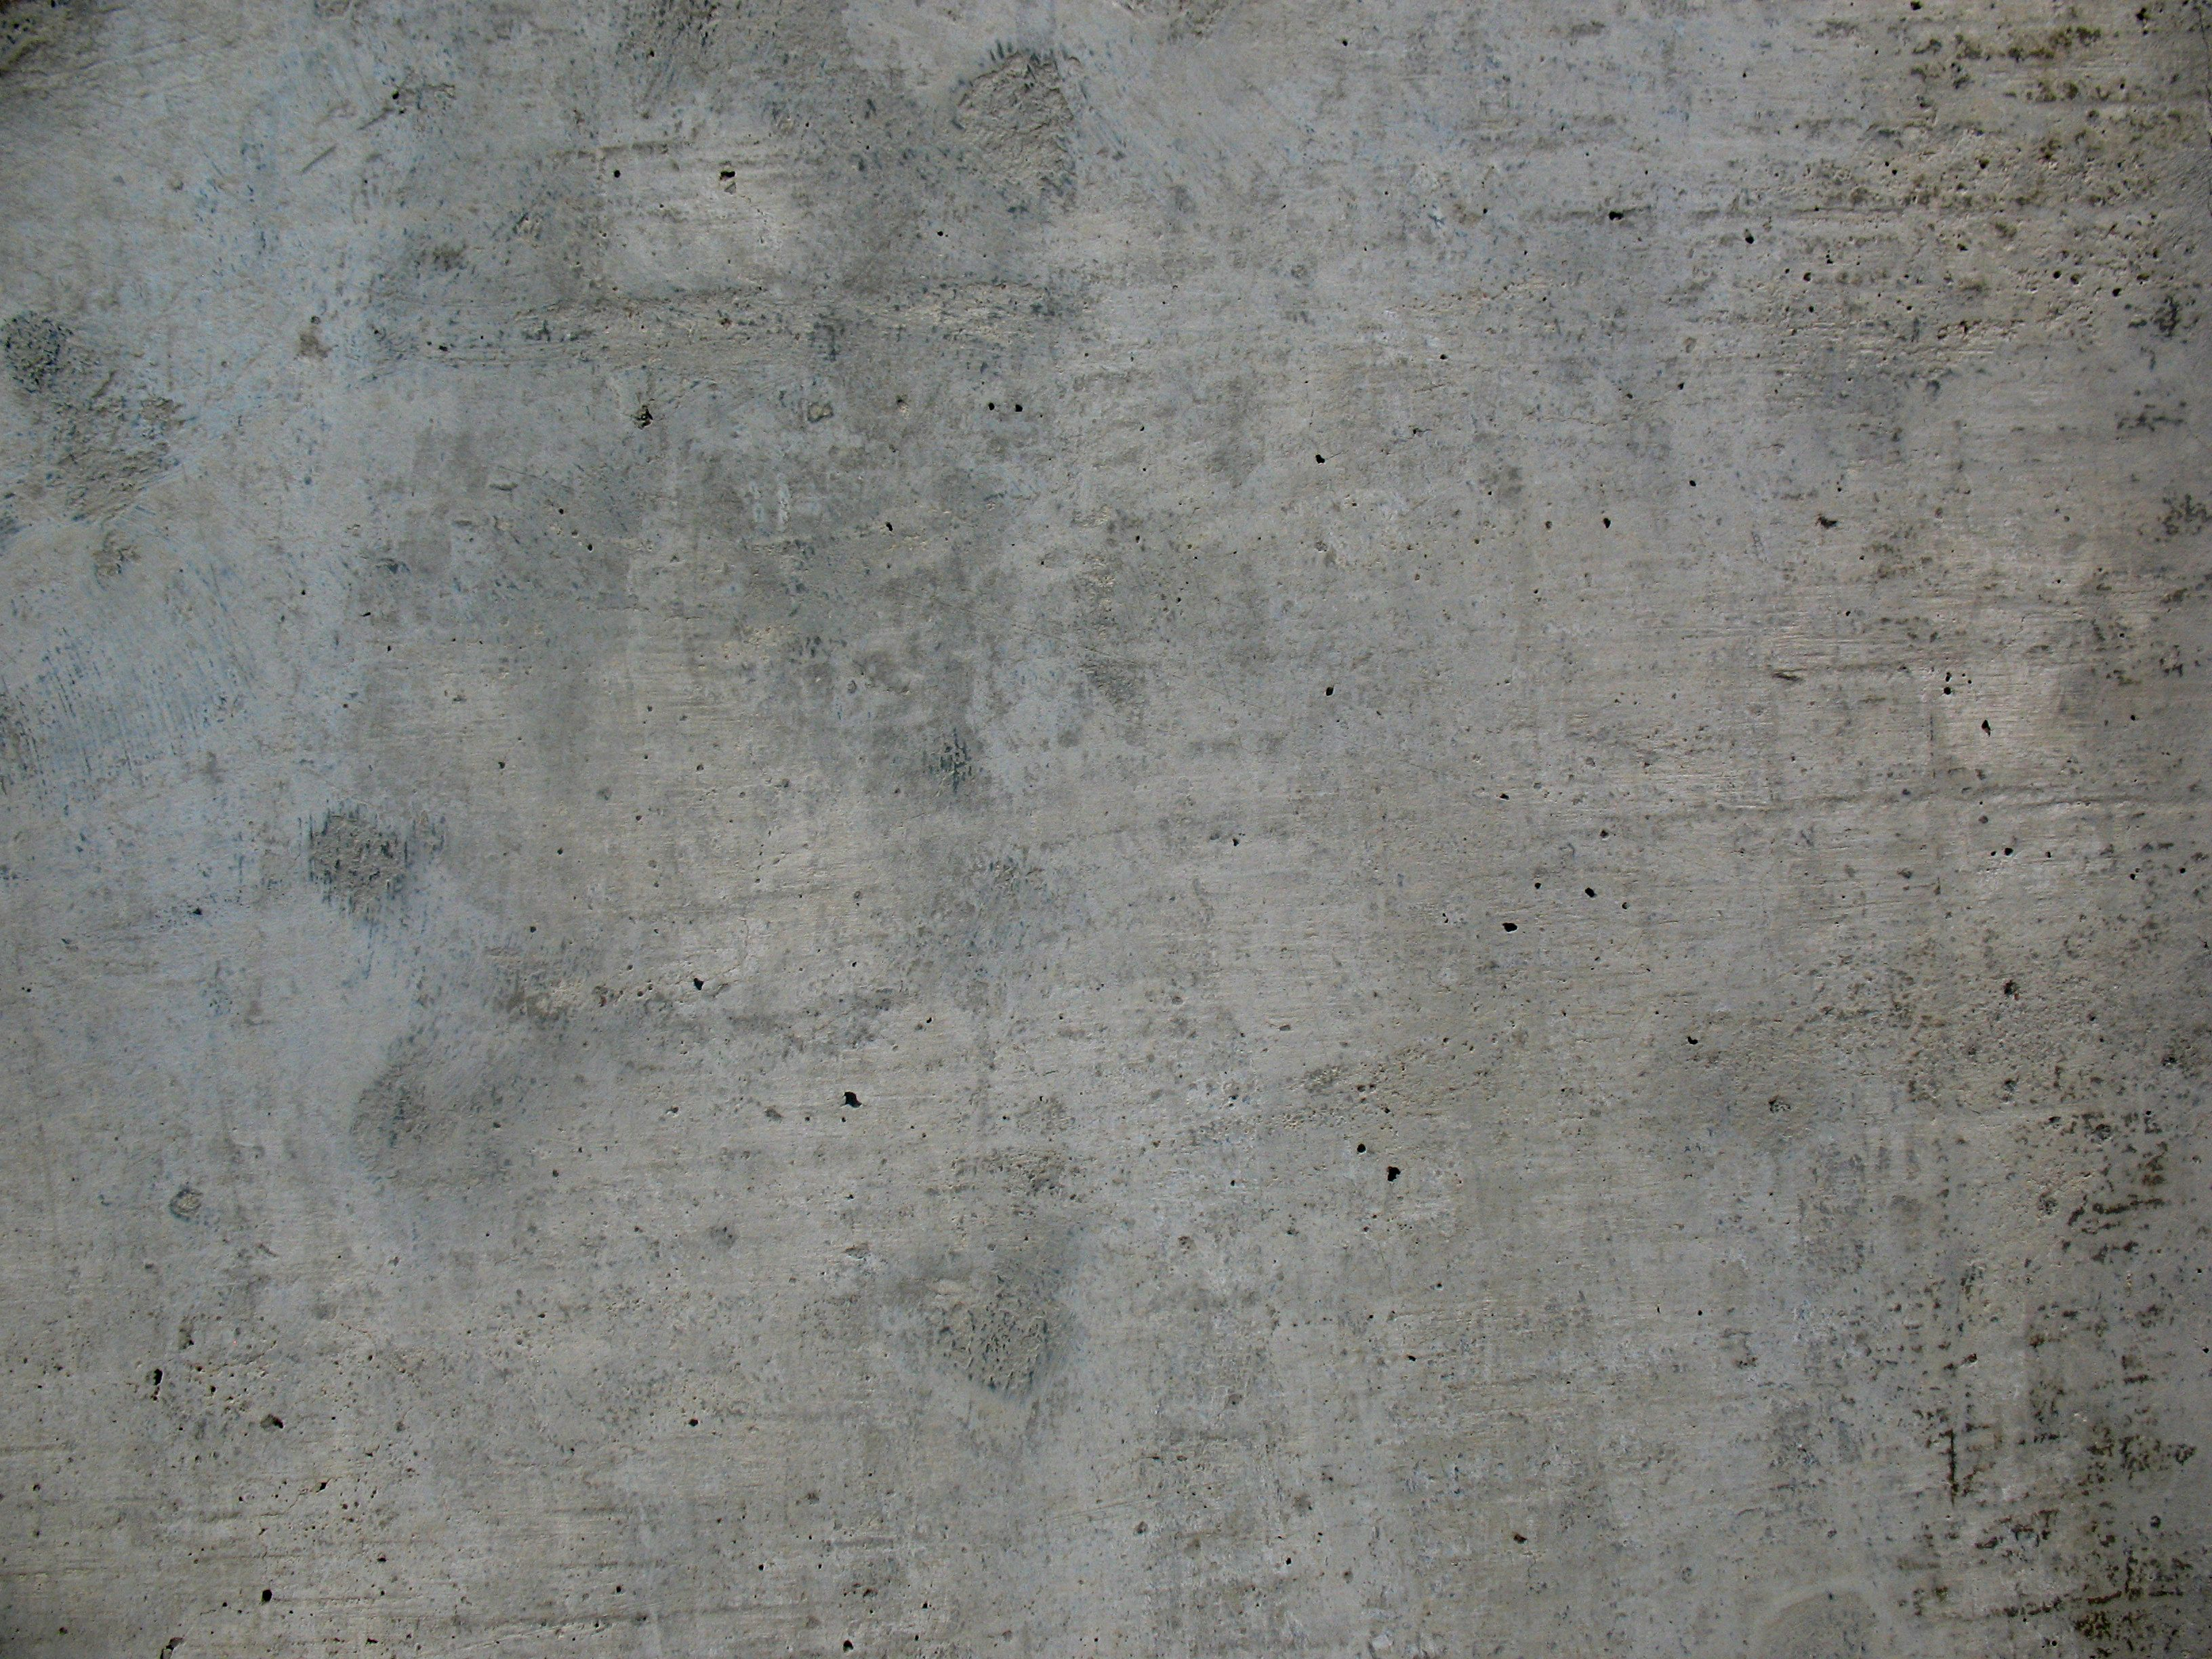 Kitchen bench: Rock and Concrete Textures (5) in 2019.